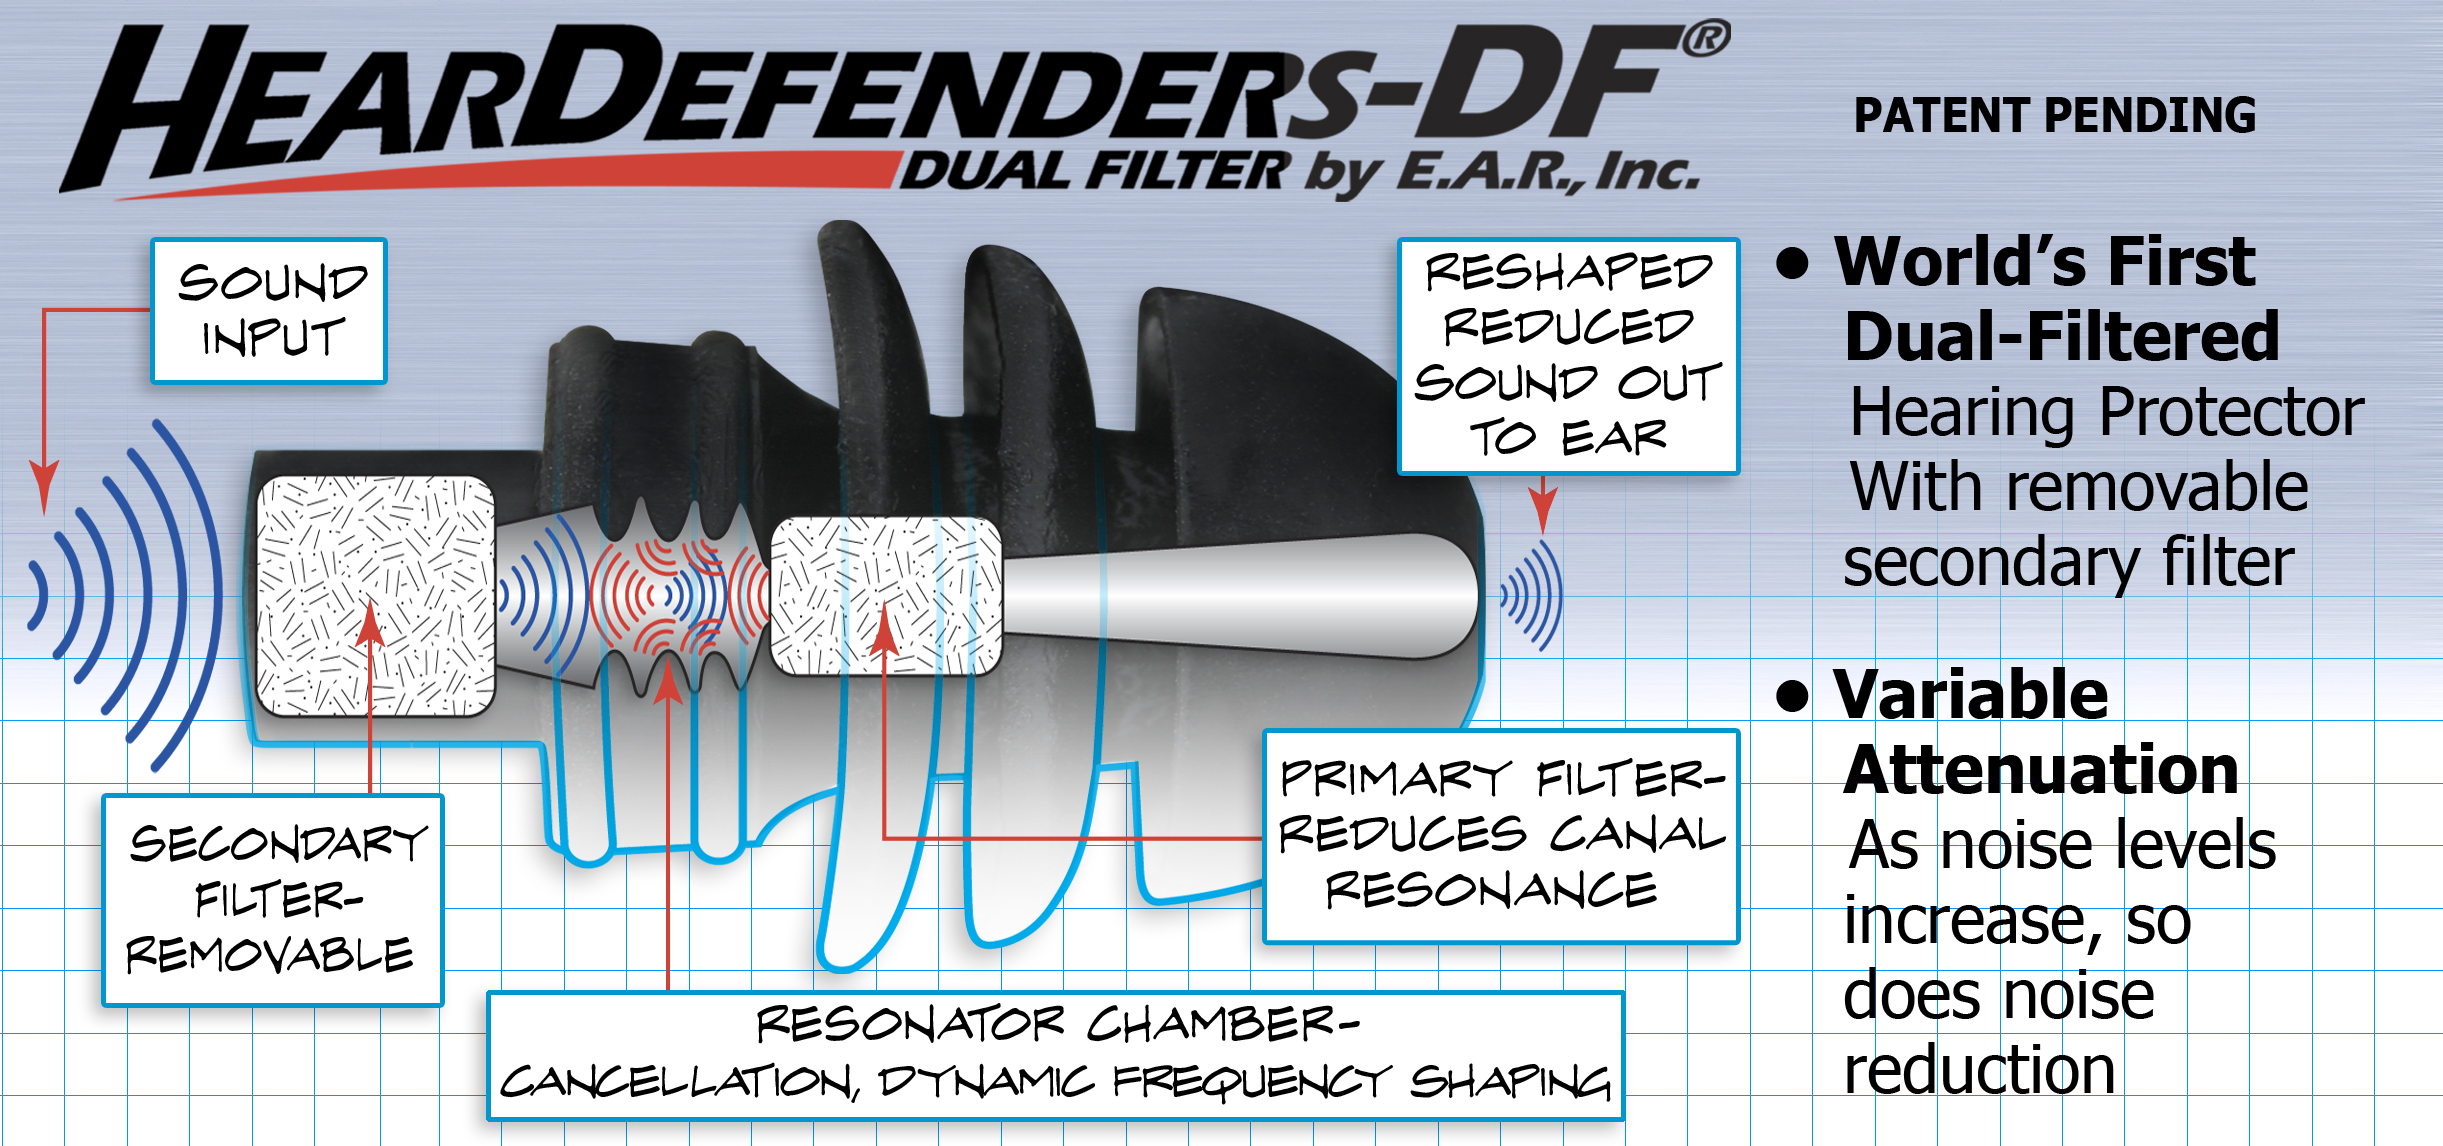 HearDefenders-DF Diagram